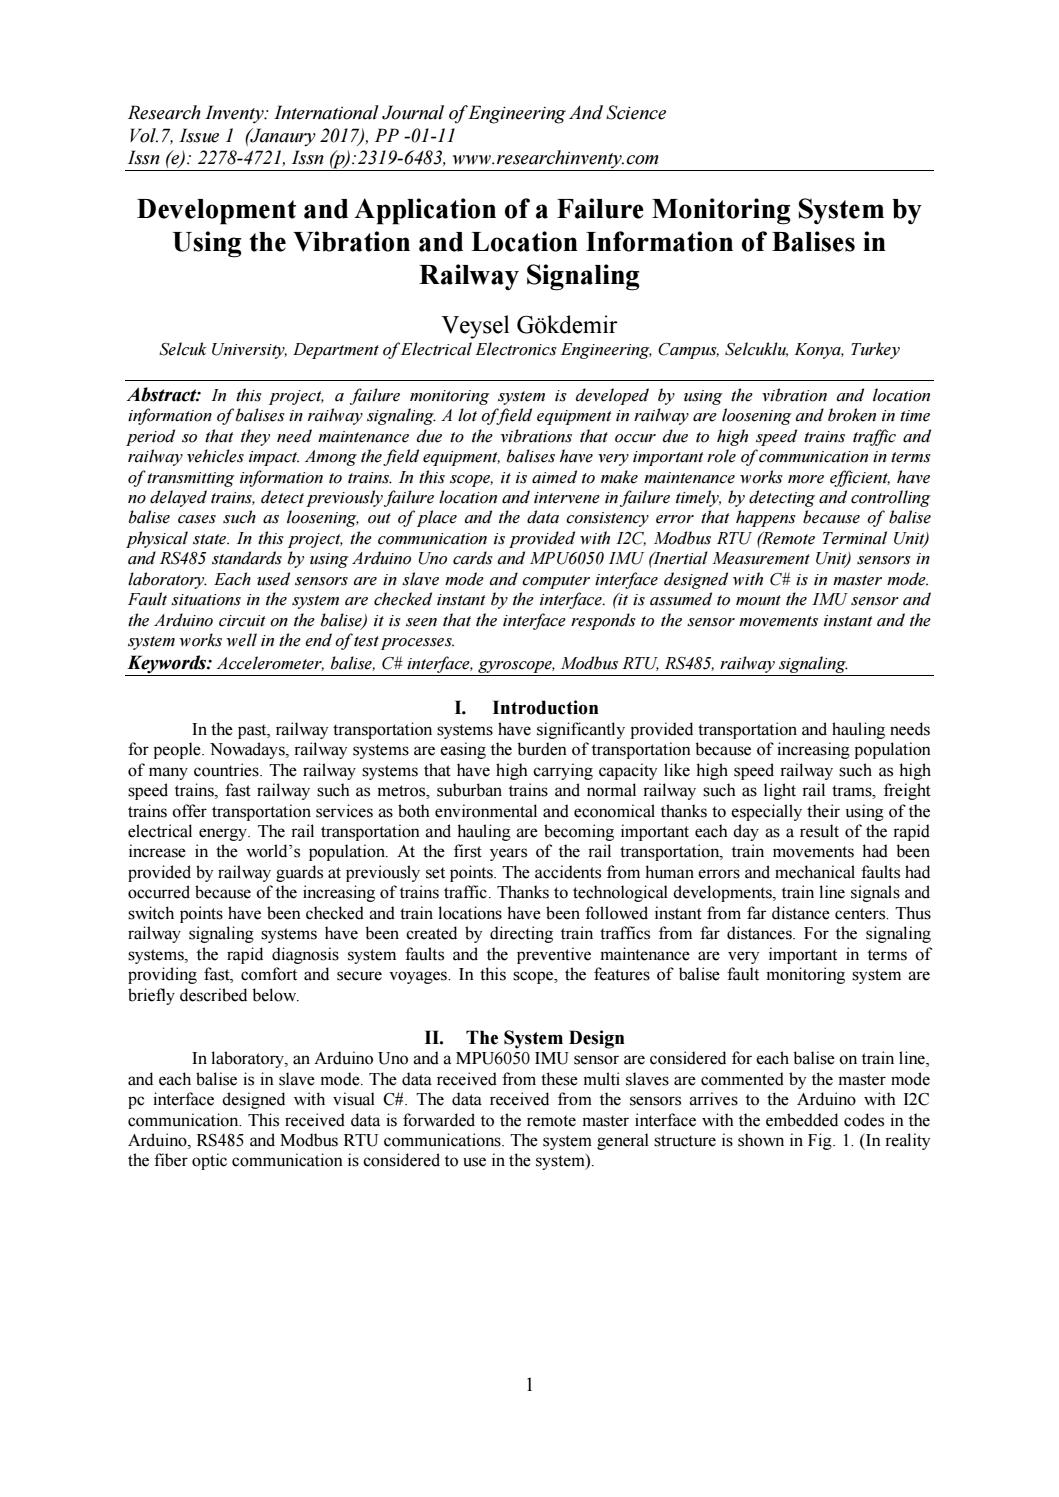 Development and Application of a Failure Monitoring System